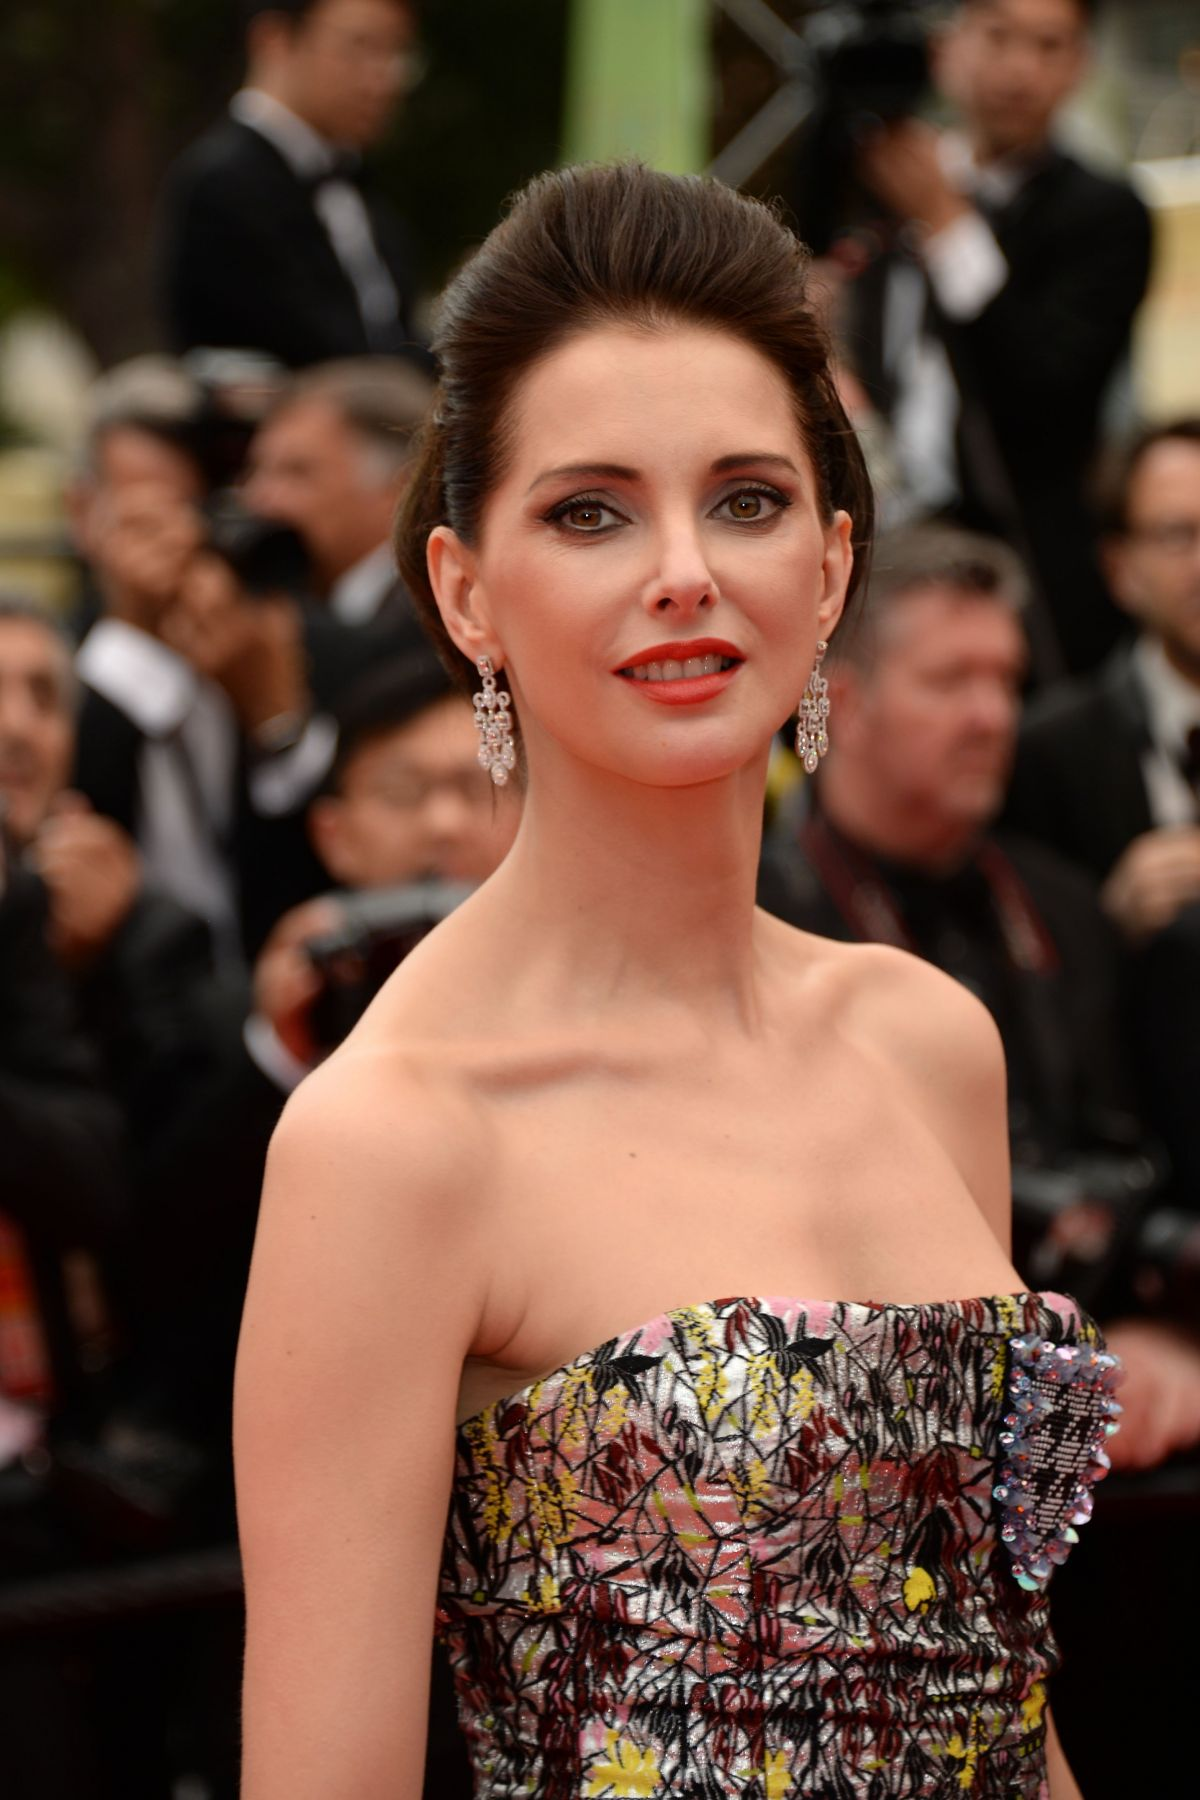 FREDERIQUE BELL at Cannes Film Festival 2014